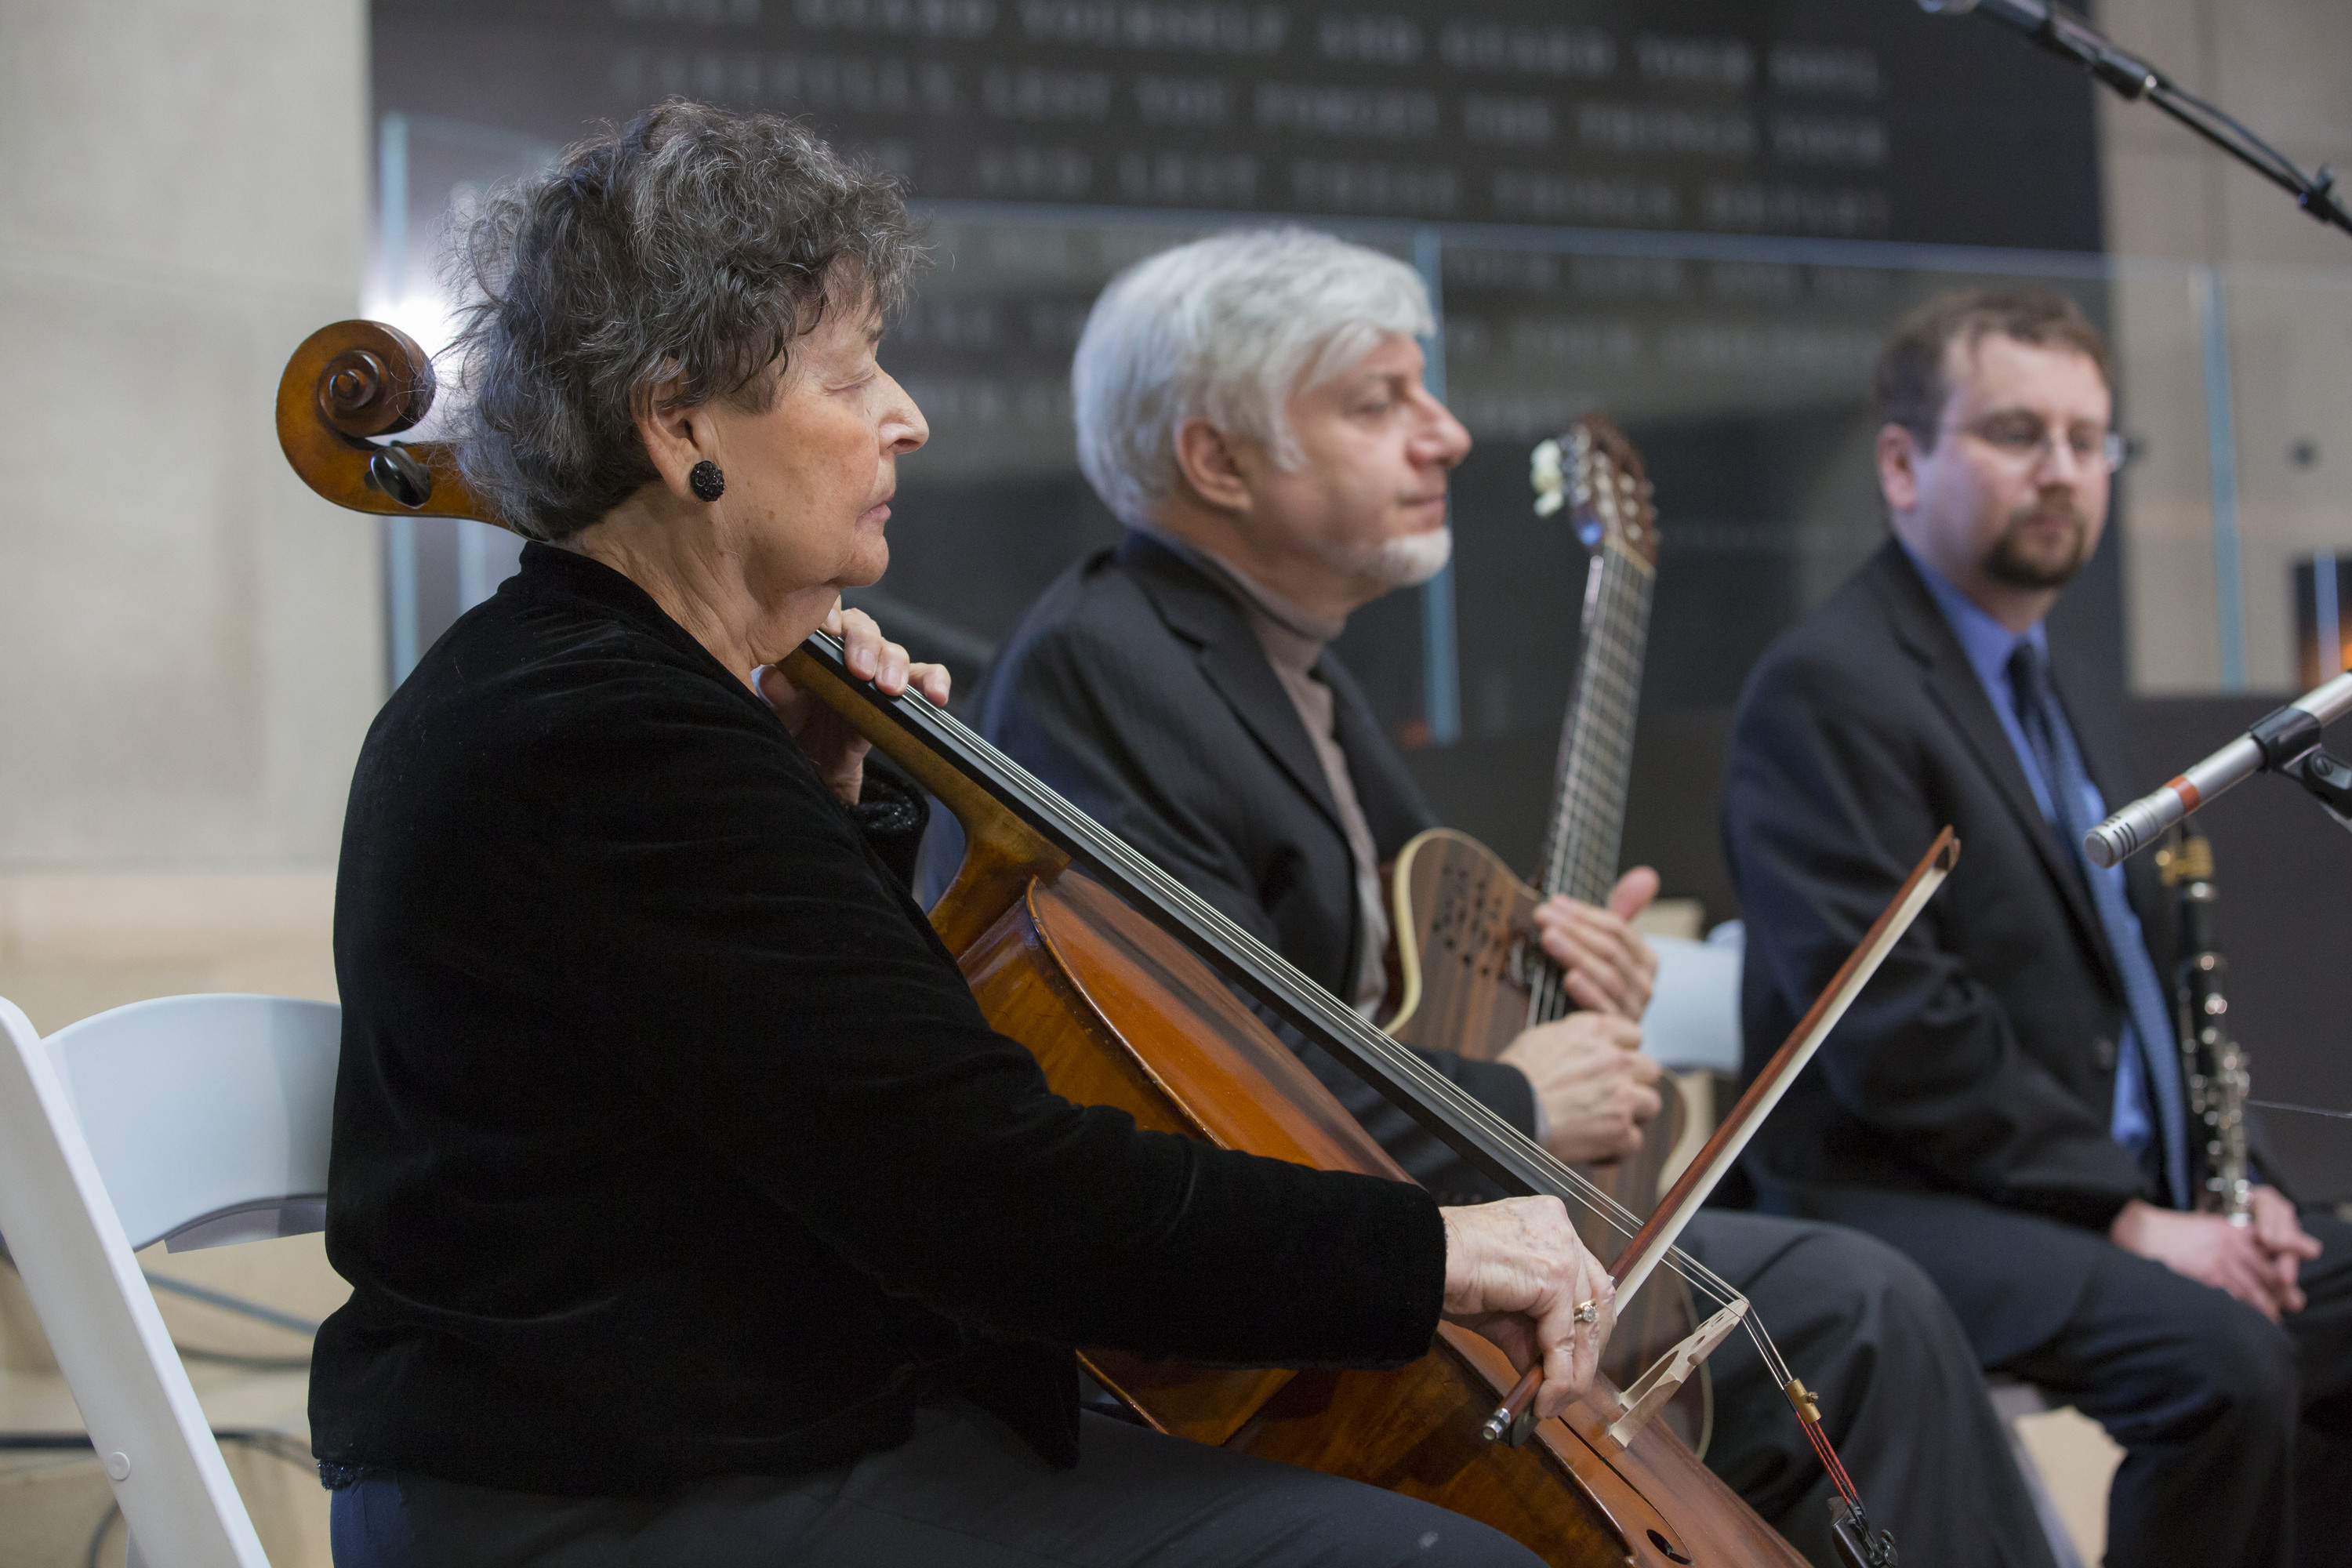 A survivor volunteer plays music at a Museum remembrance event.